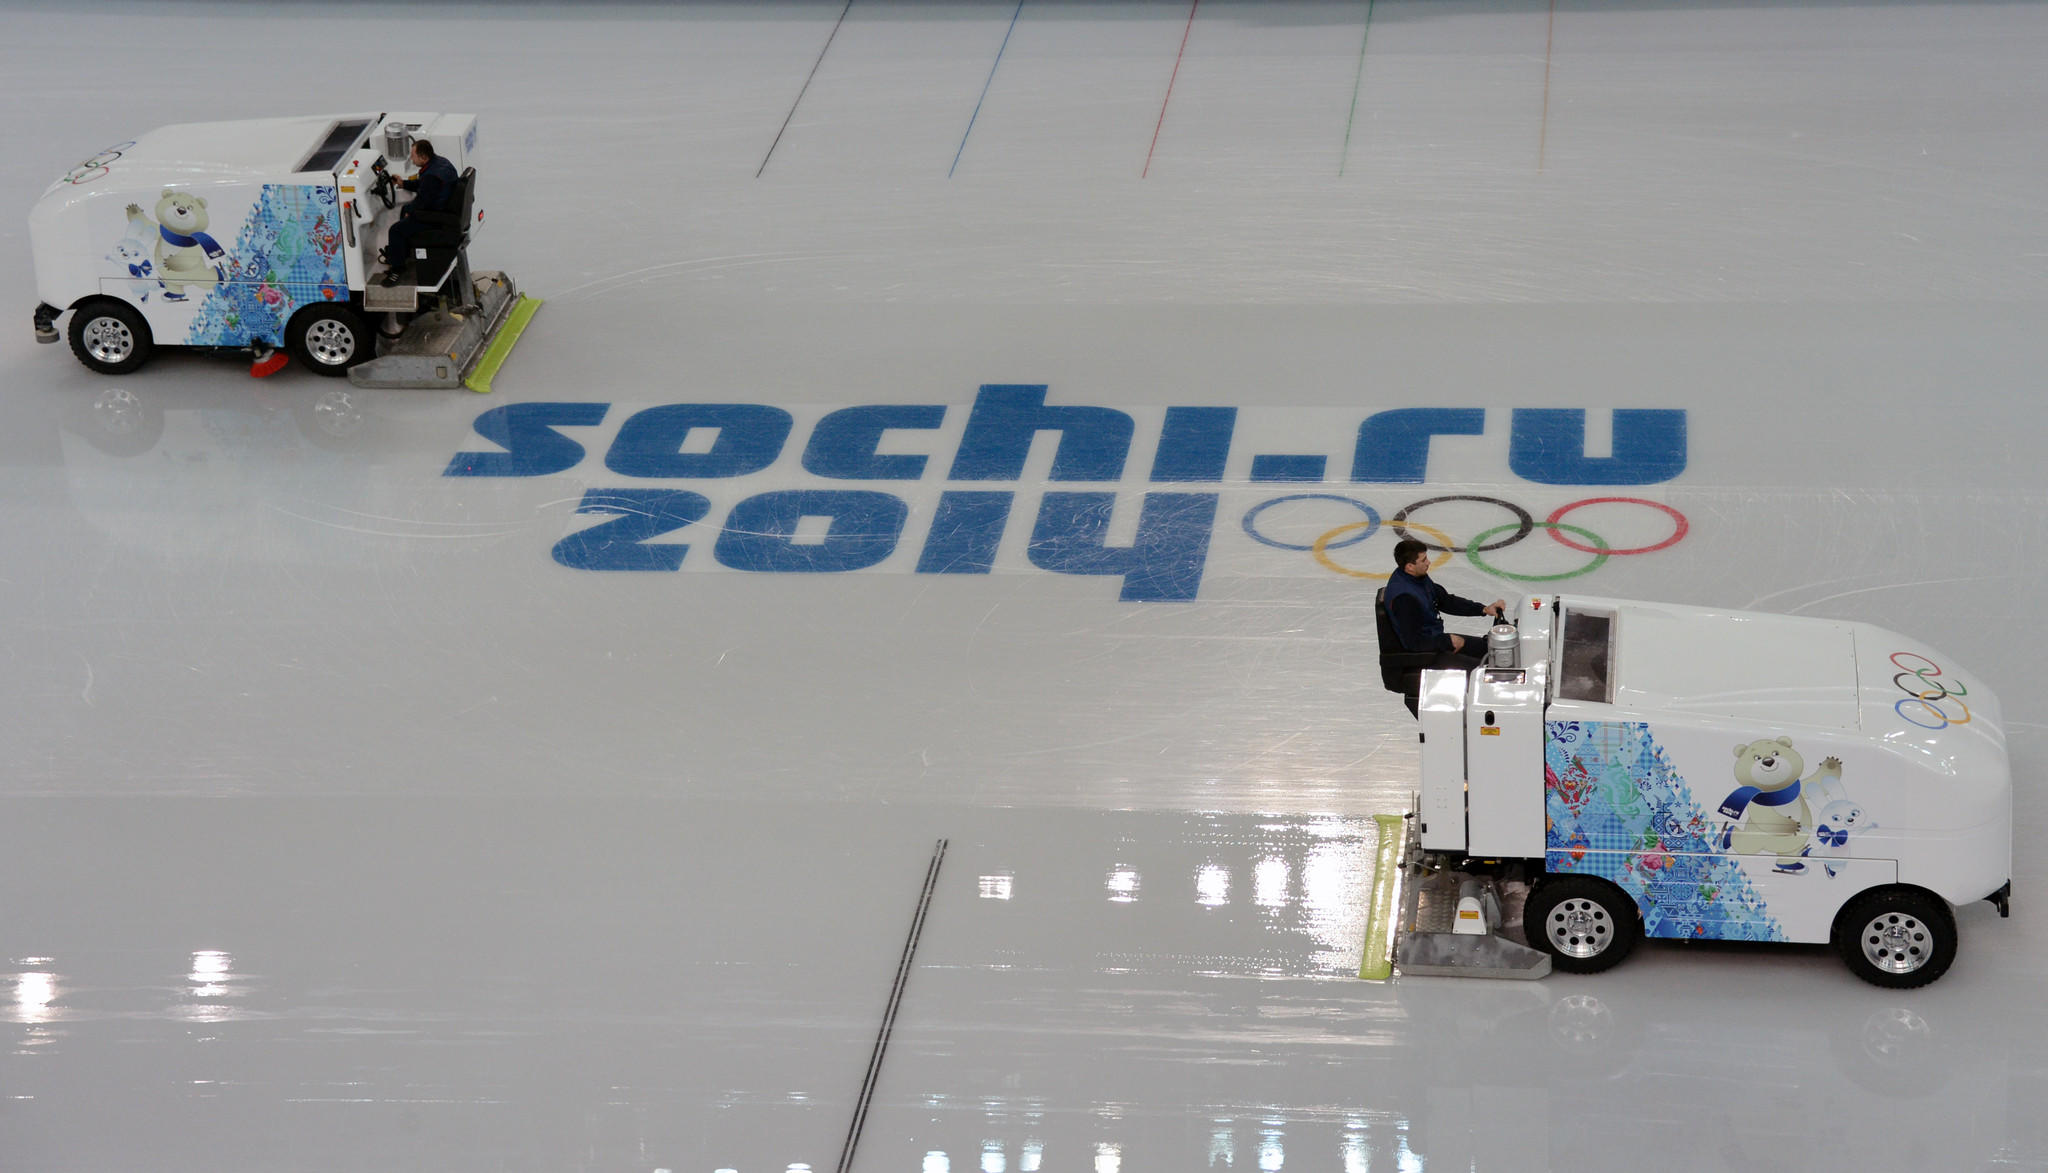 Zamboni machine drivers prepare the rink in Olympic Park prior to 2014 Sochi Winter Olympic Games at Iceberg Skating Palace.